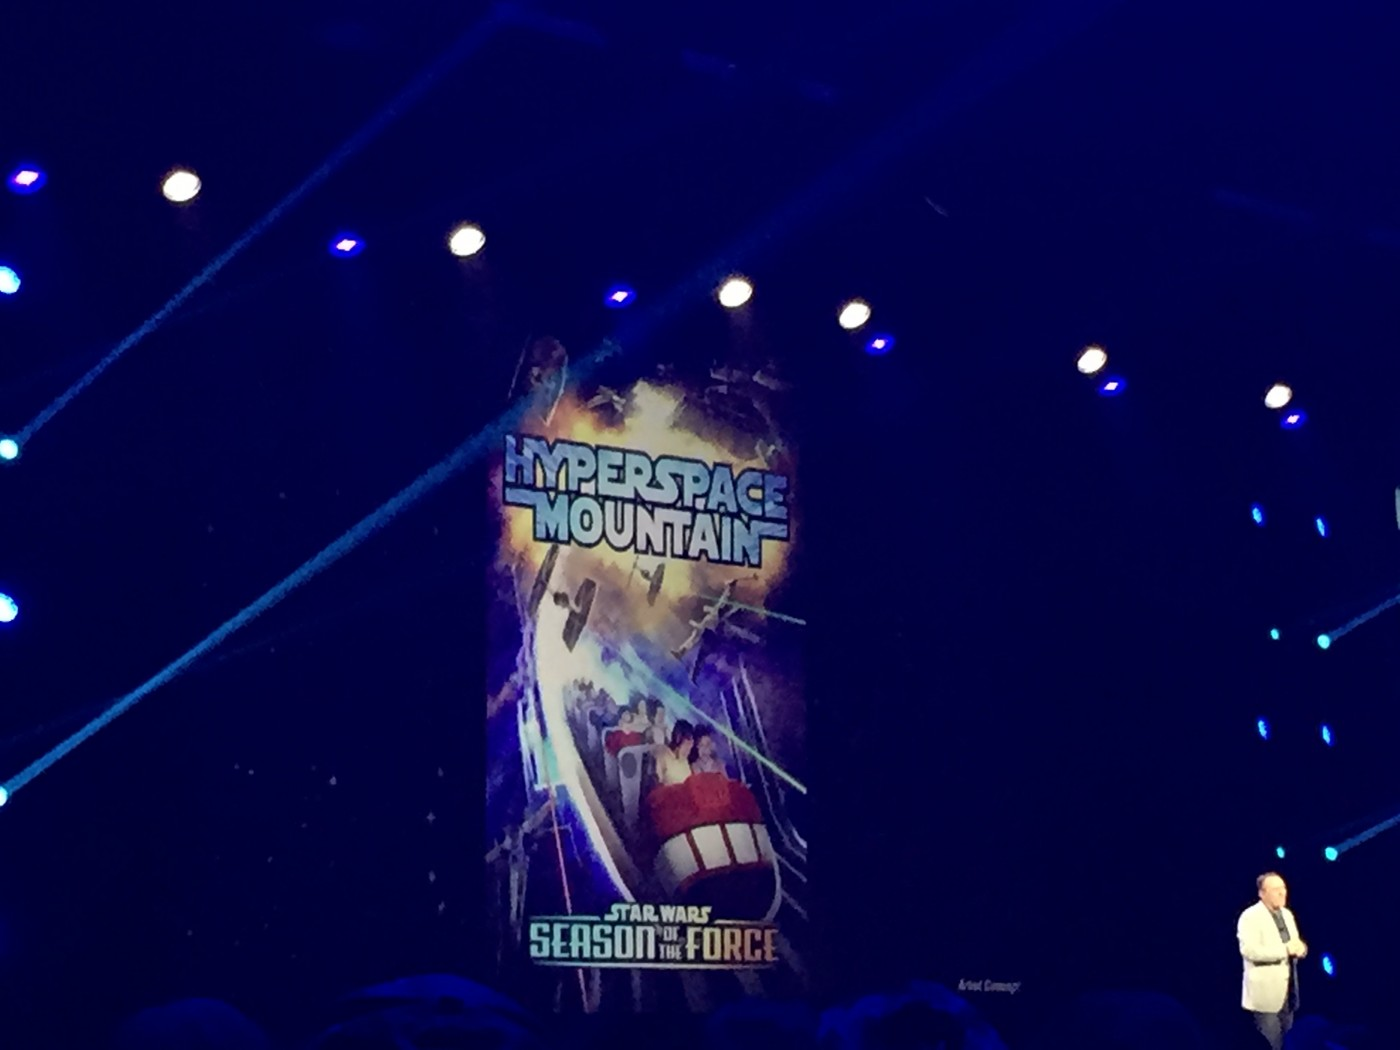 Hyperspace Mountain announced at D23 Expo